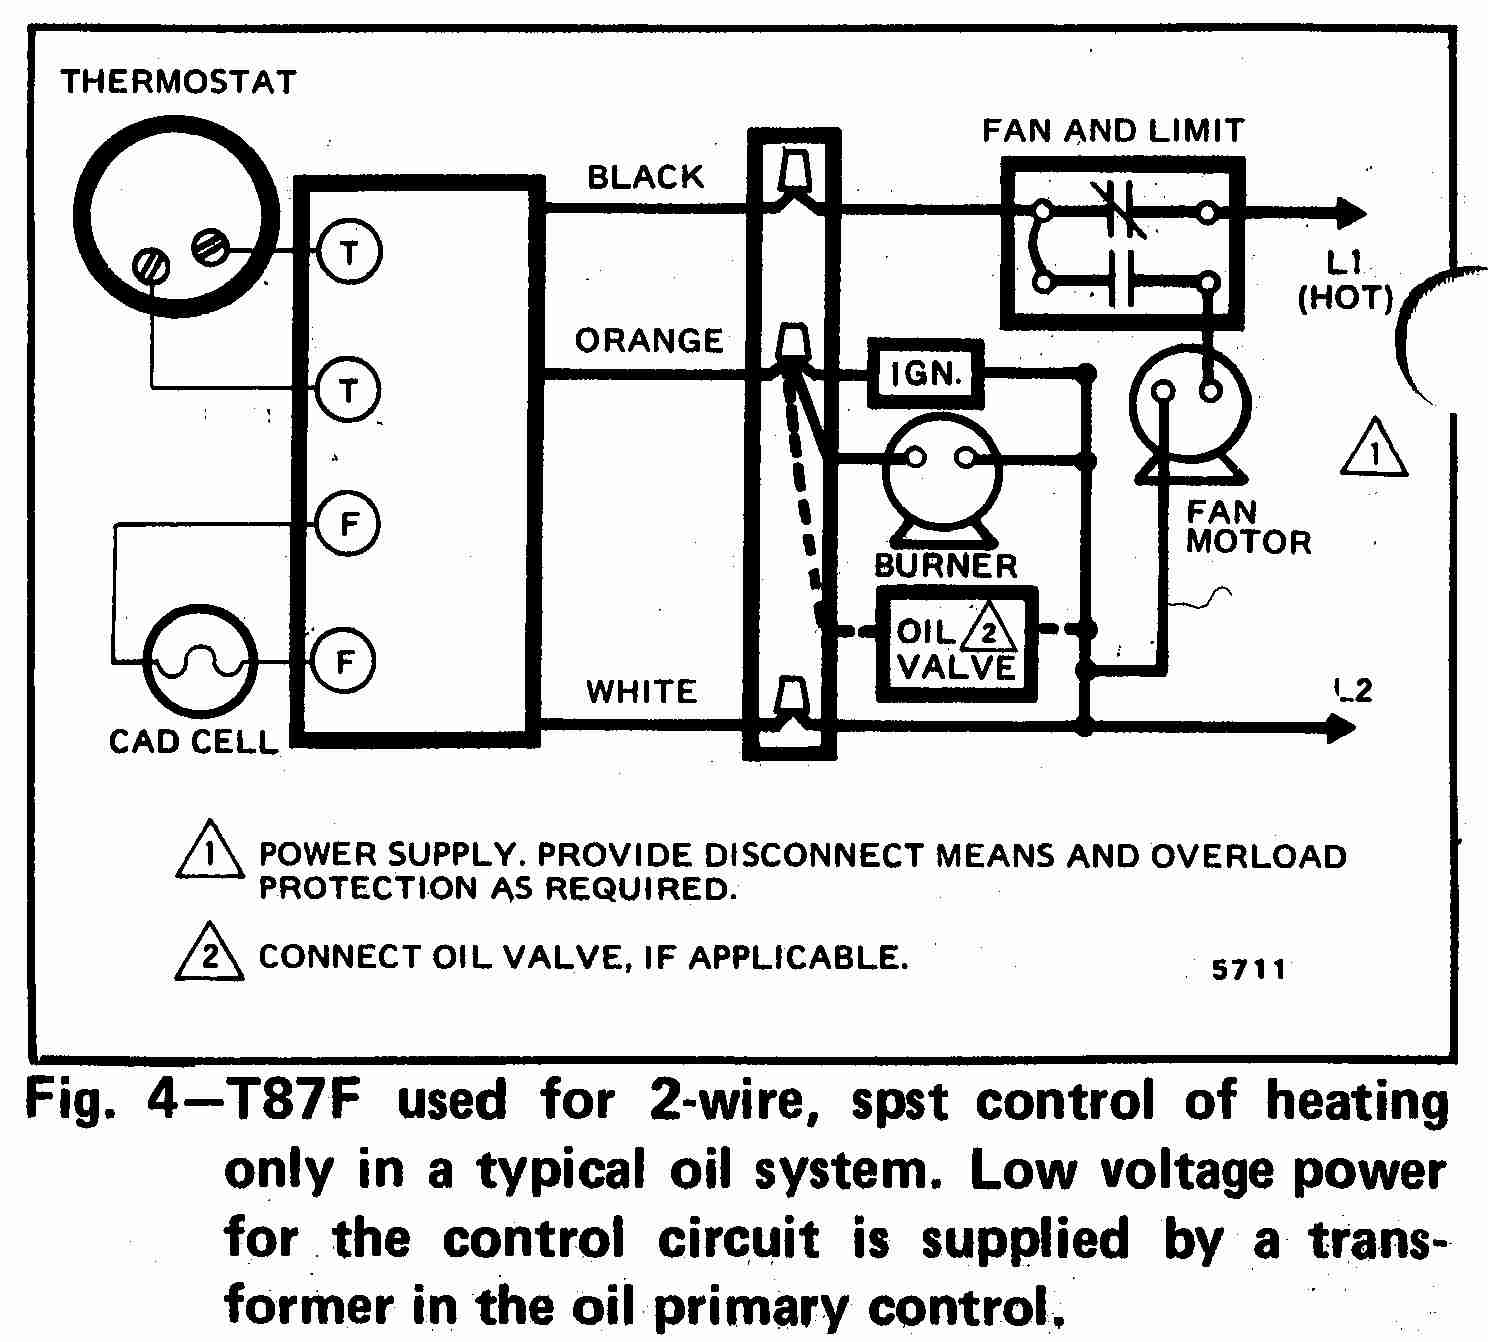 thermistor relay wiring diagram nuheat home thermostat room diagrams for hvac systems